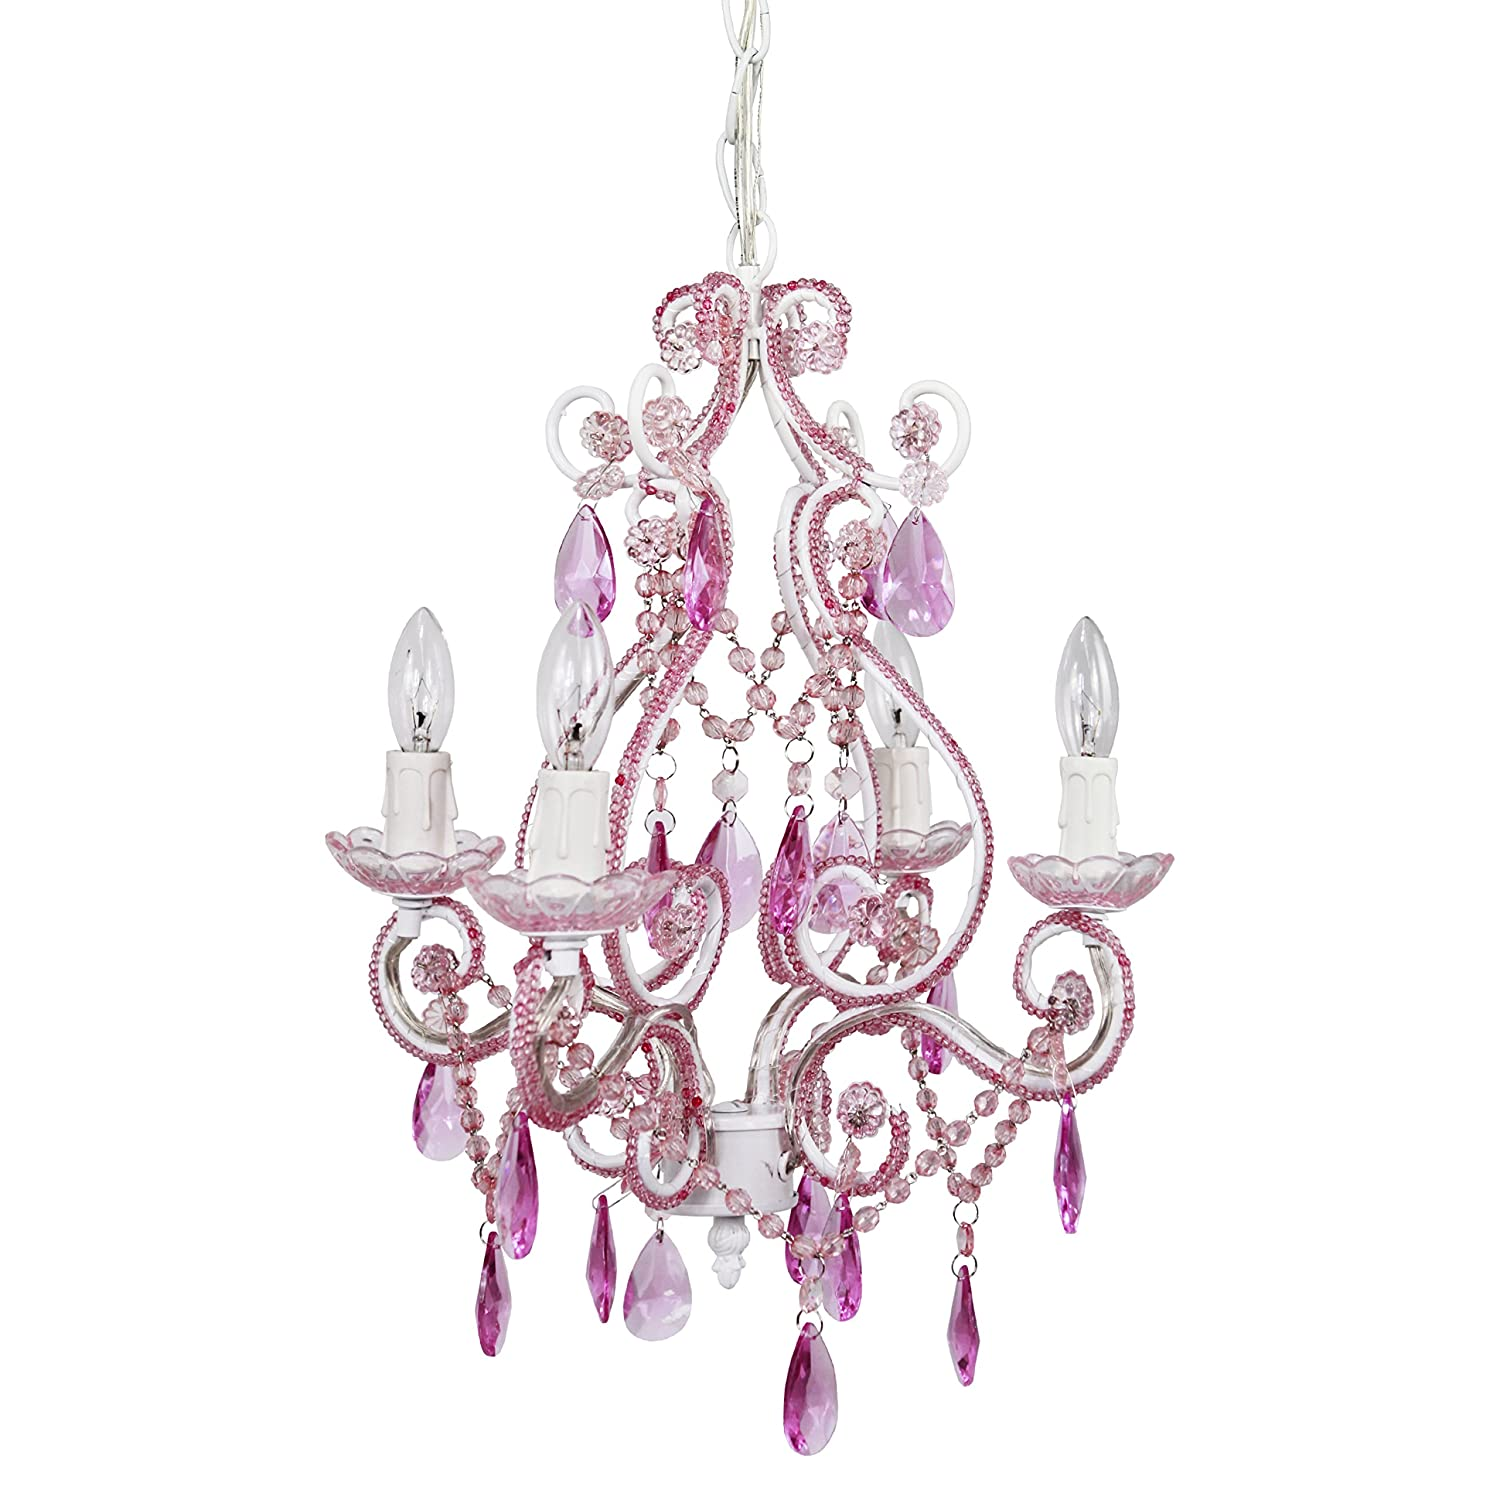 Tadpoles 4-Bulb Vintage Plug-In or Hardwired Mini-Chandelier, Pink Sapphire